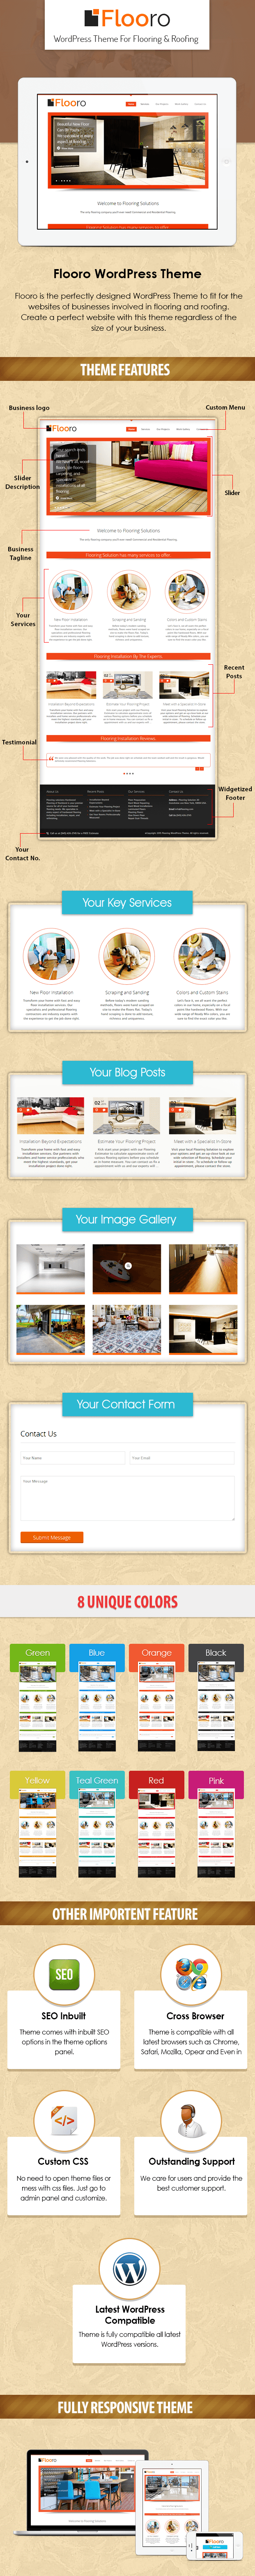 flooro - the flooring and roofing wordpress theme from inkthemes